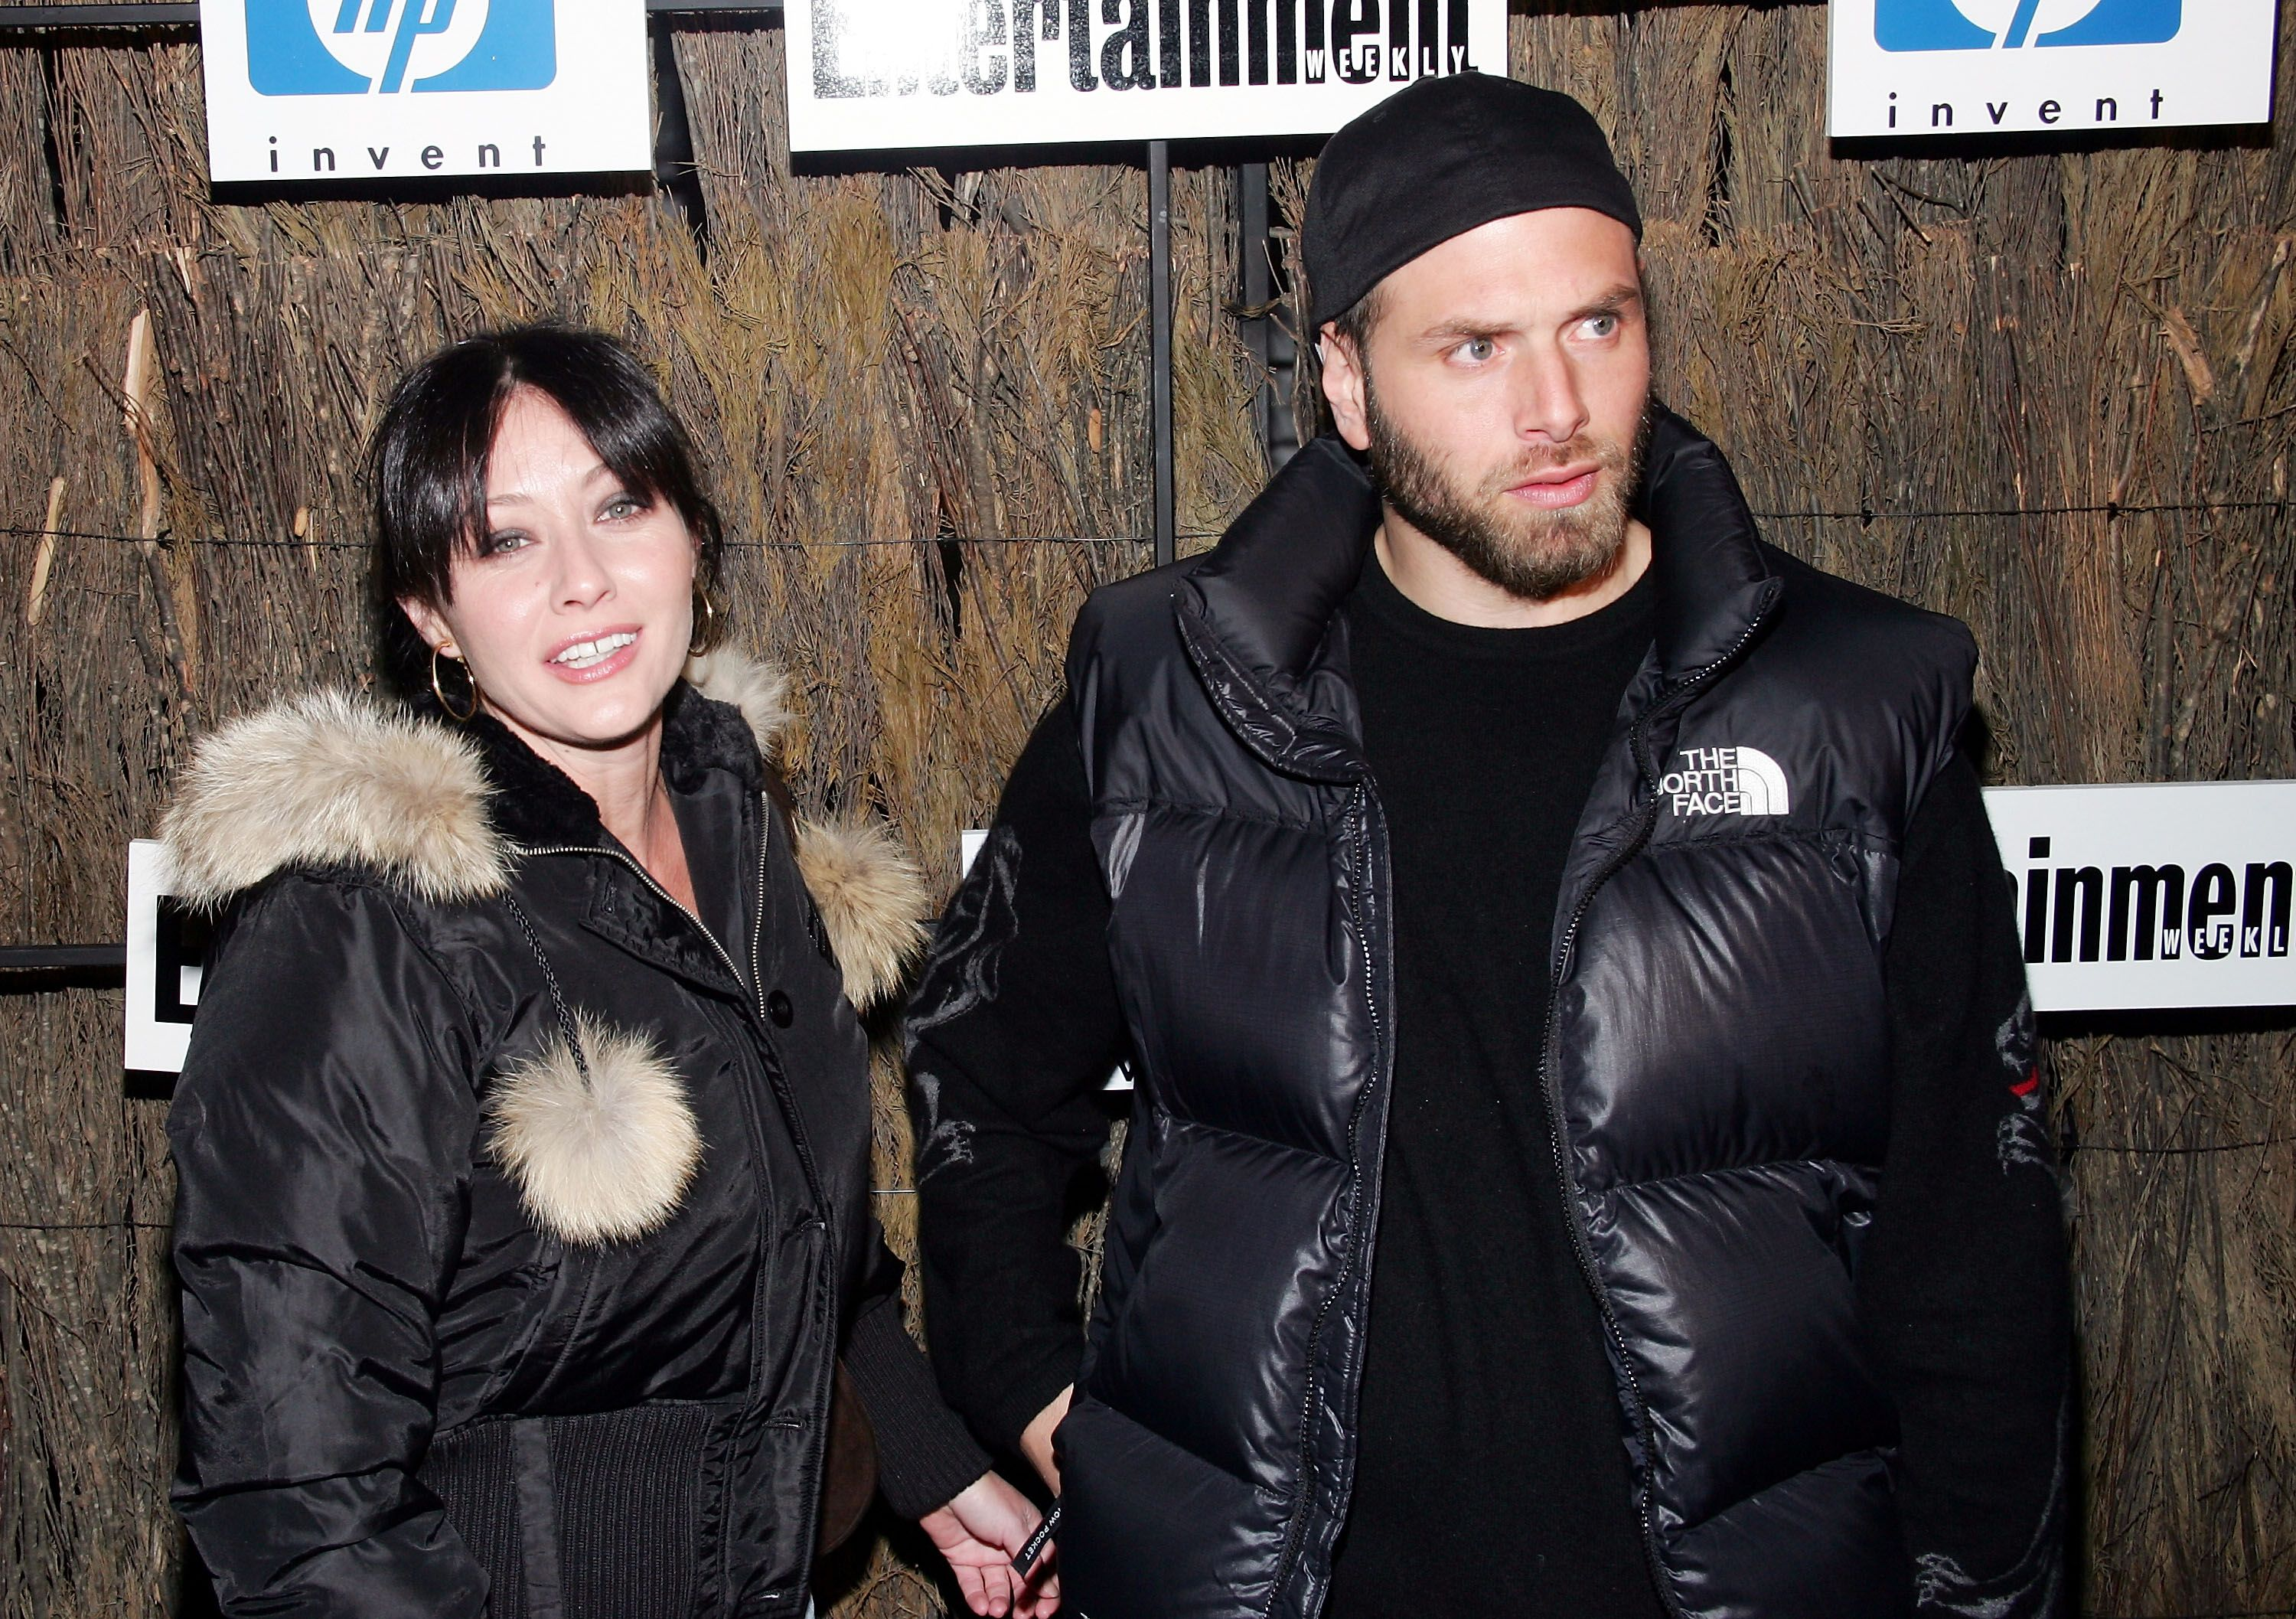 Shannen Doherty and Rick Salomon attend Entertainment Weekly?s Winter Wonderland Sundance Bash. | Source: Getty Images